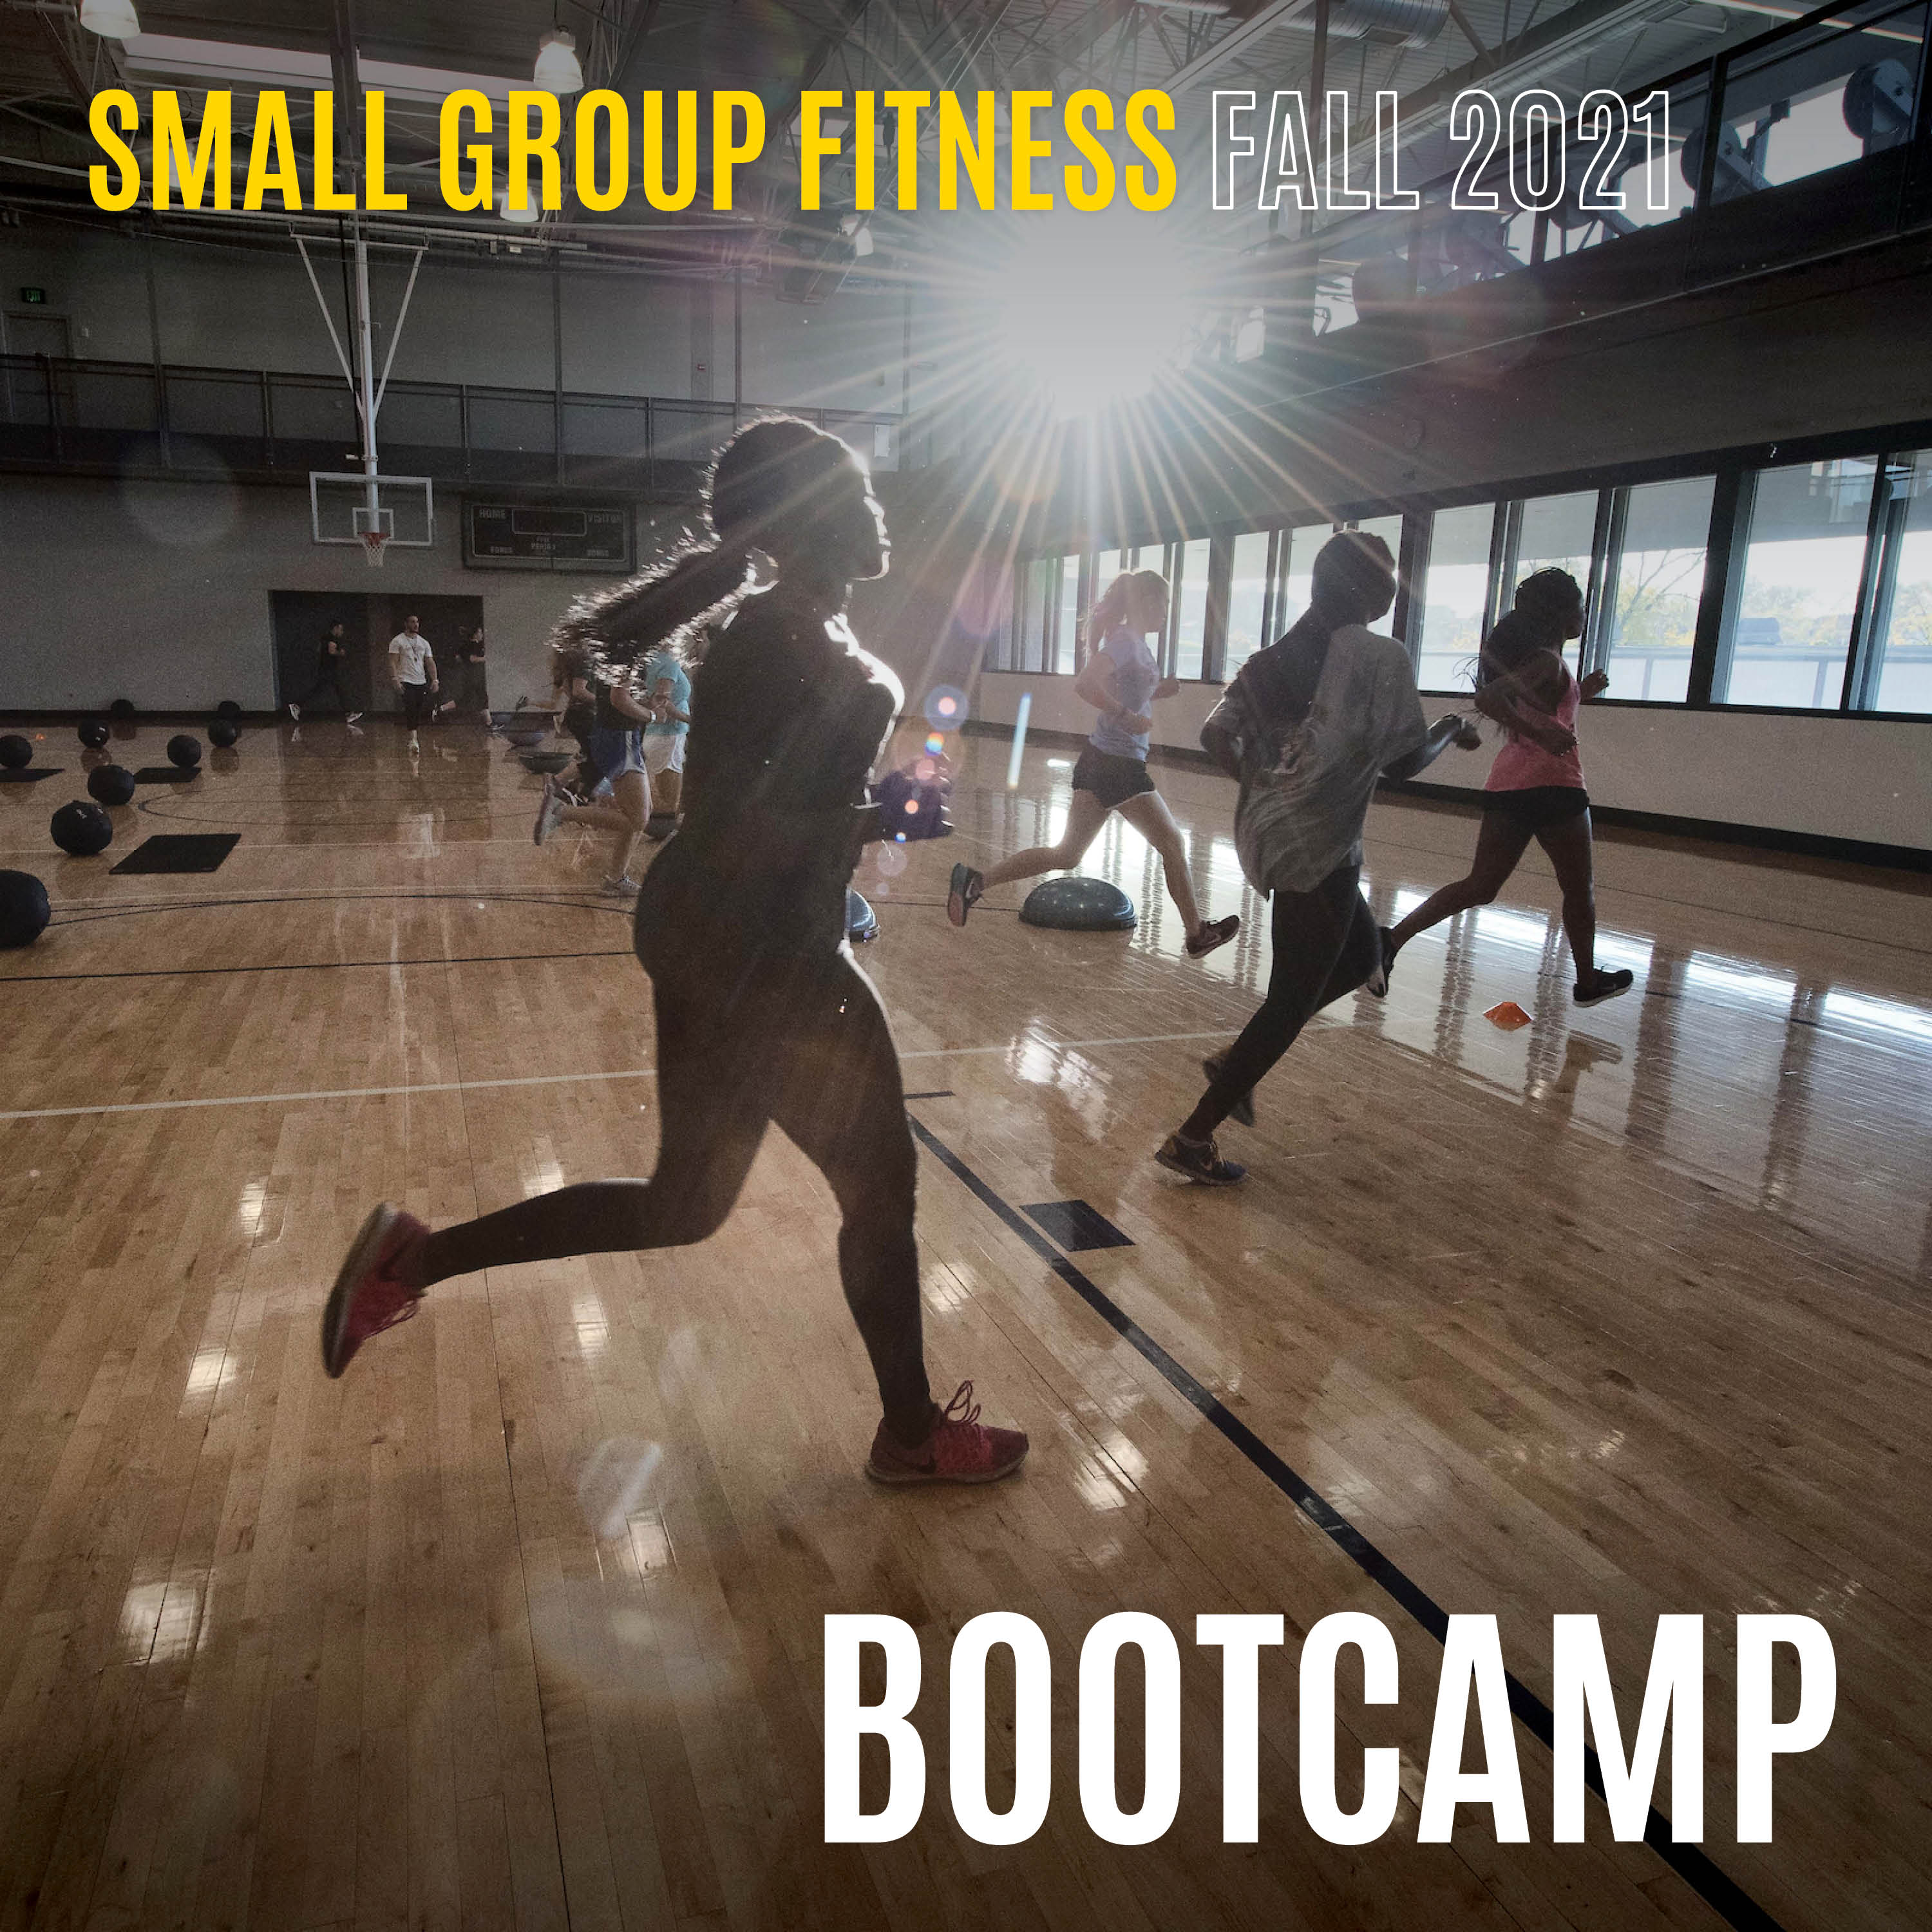 Small group training Fall 2021 Bootcamp